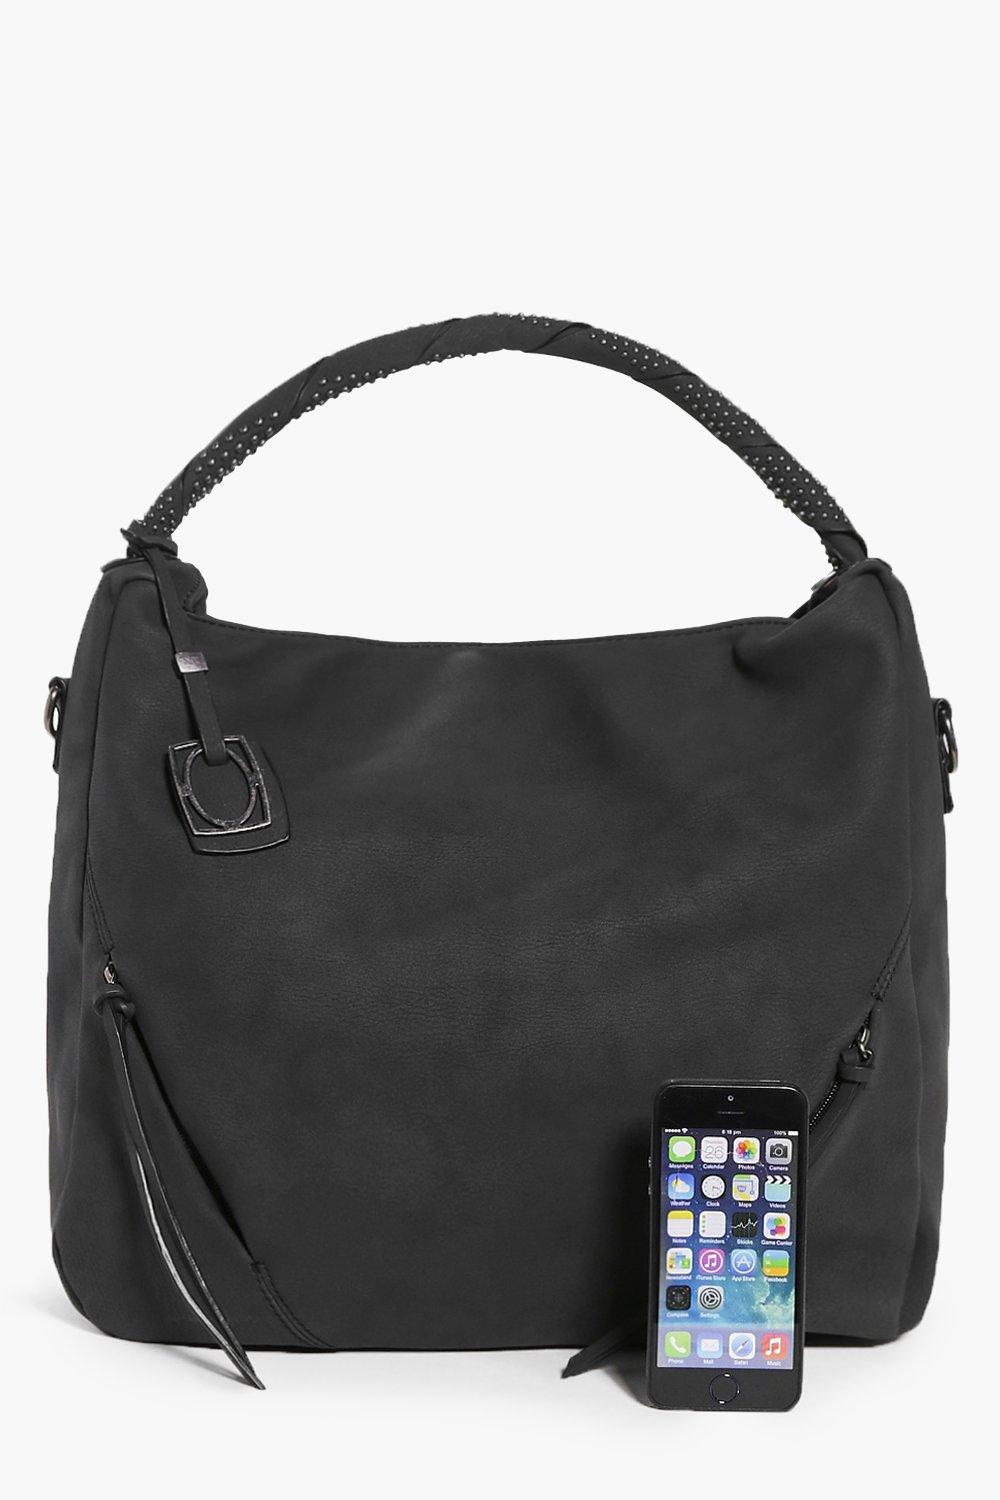 Boohoo Emilia Studded Zip Front Detail Tote Bag in Black